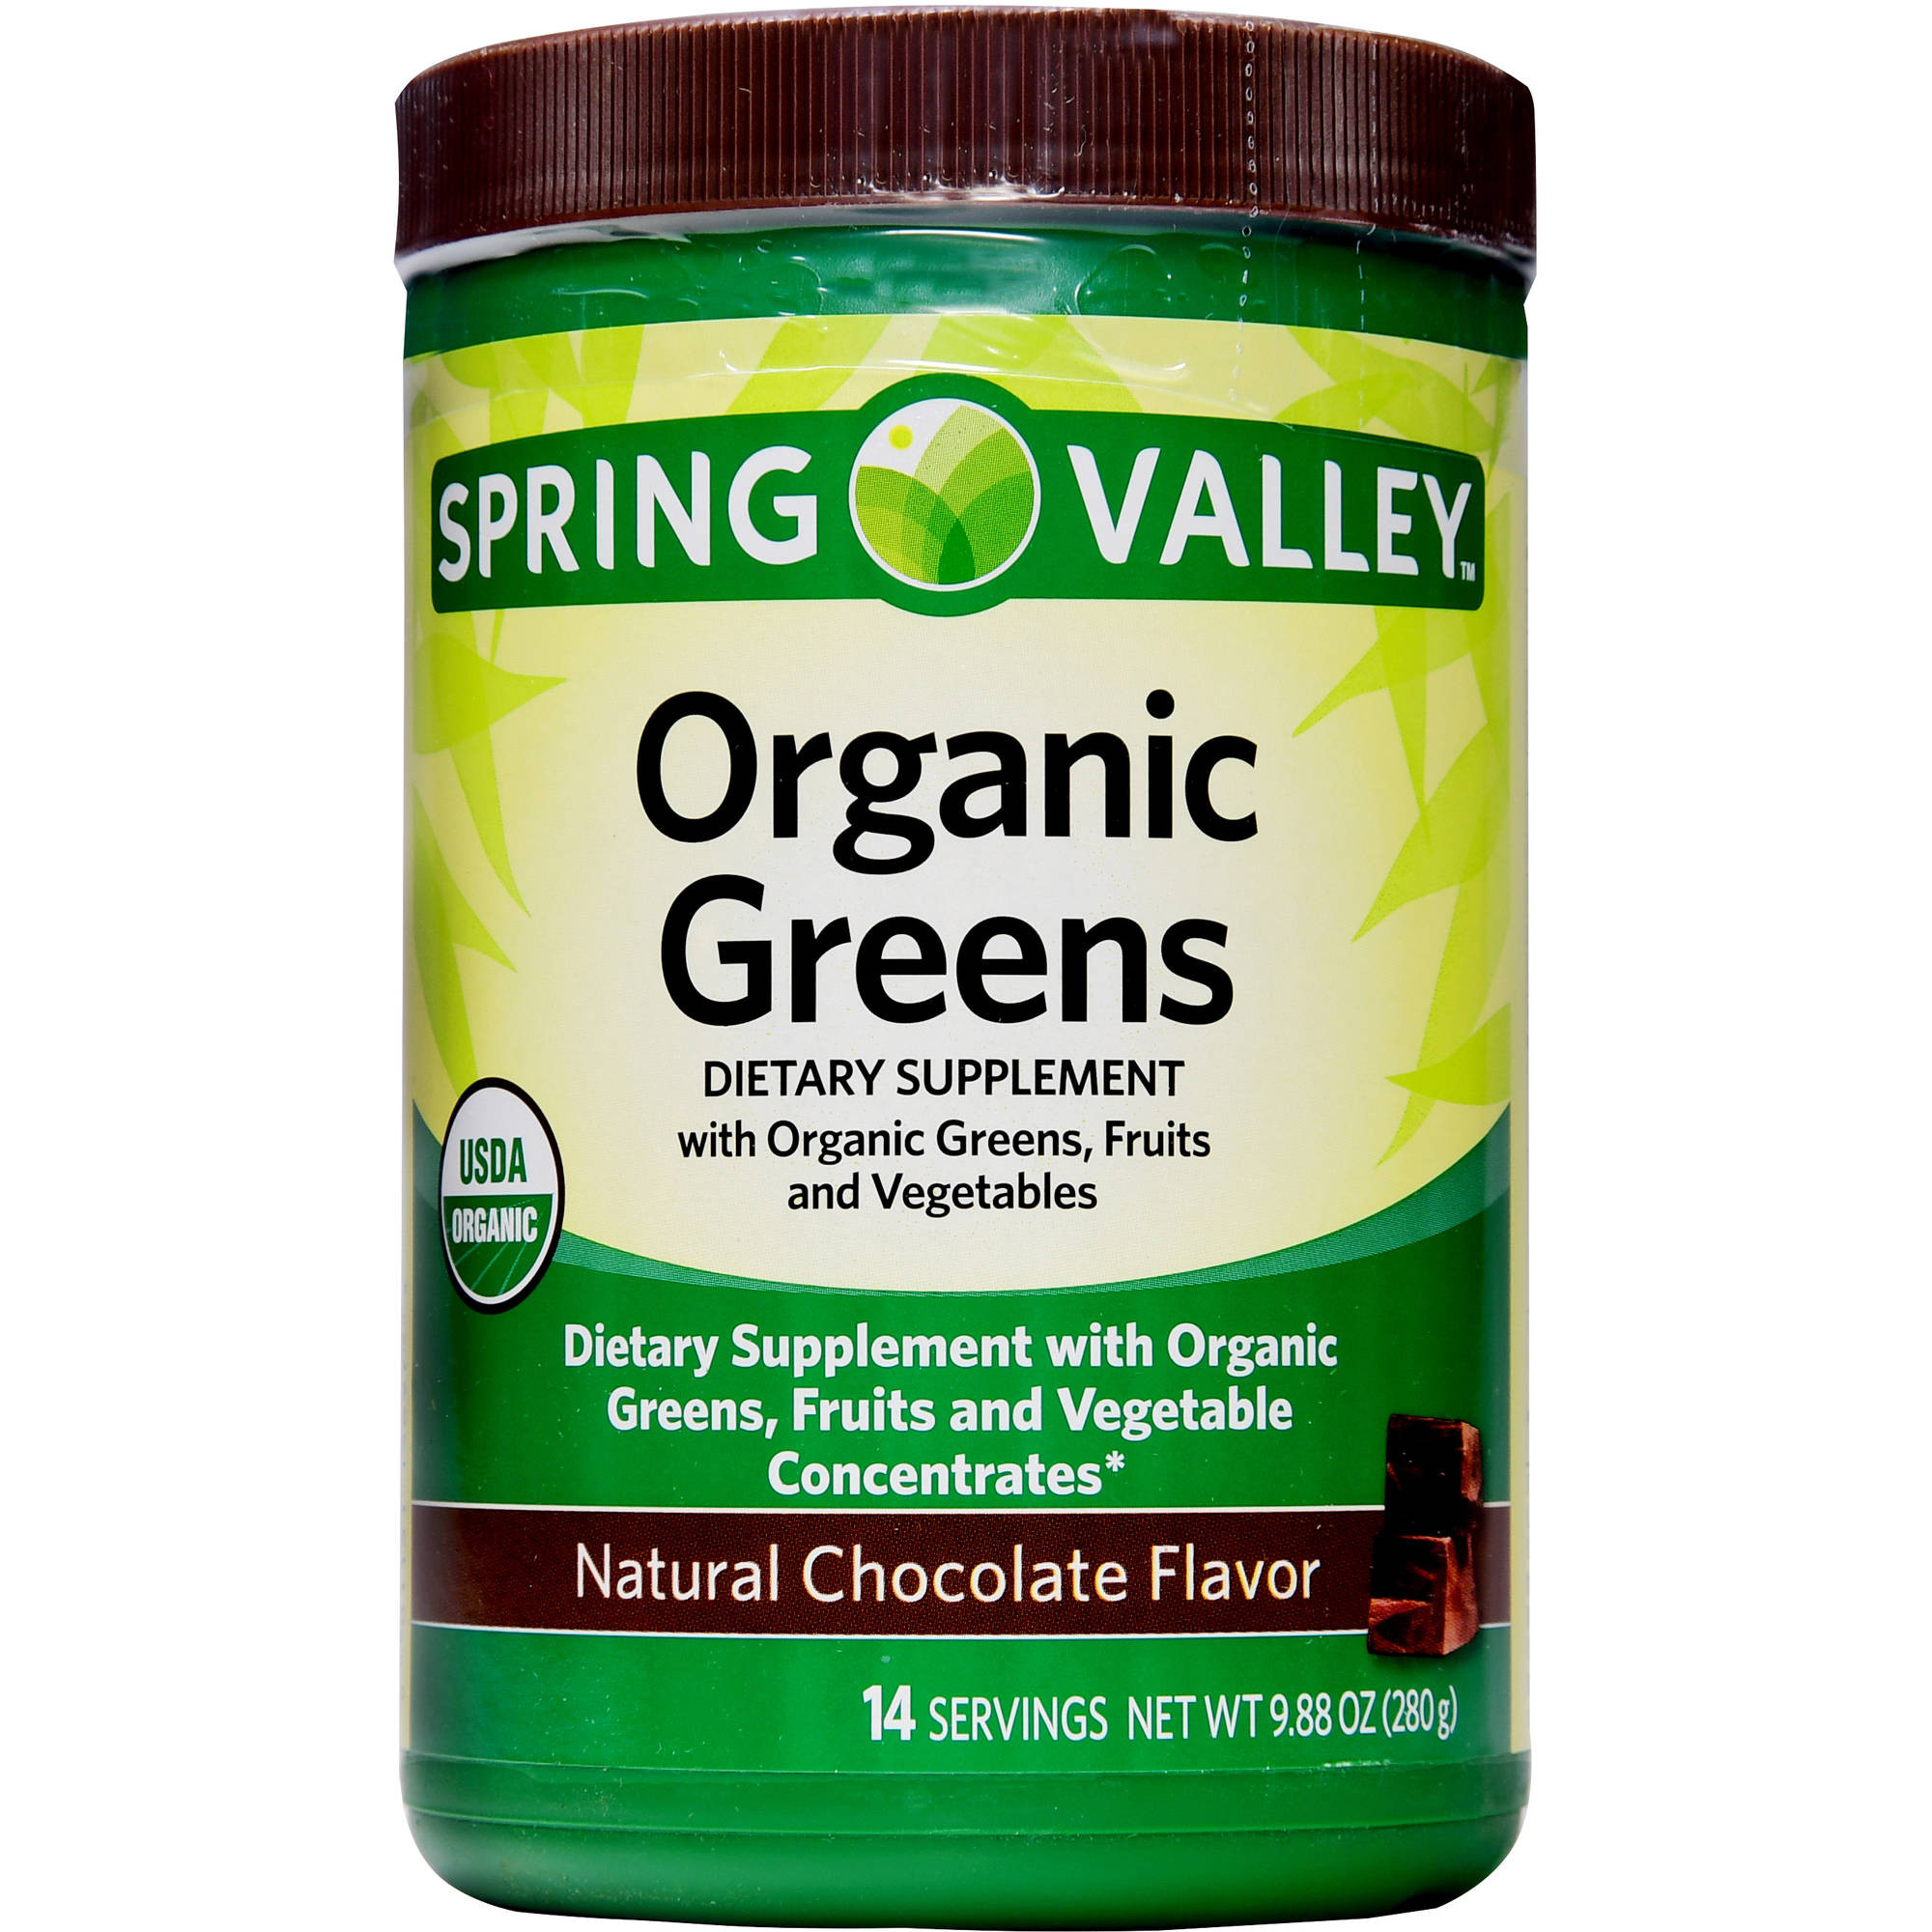 Spring Valley Organic Greens  Spring Valley Organic Greens Natural Chocolate Flavor